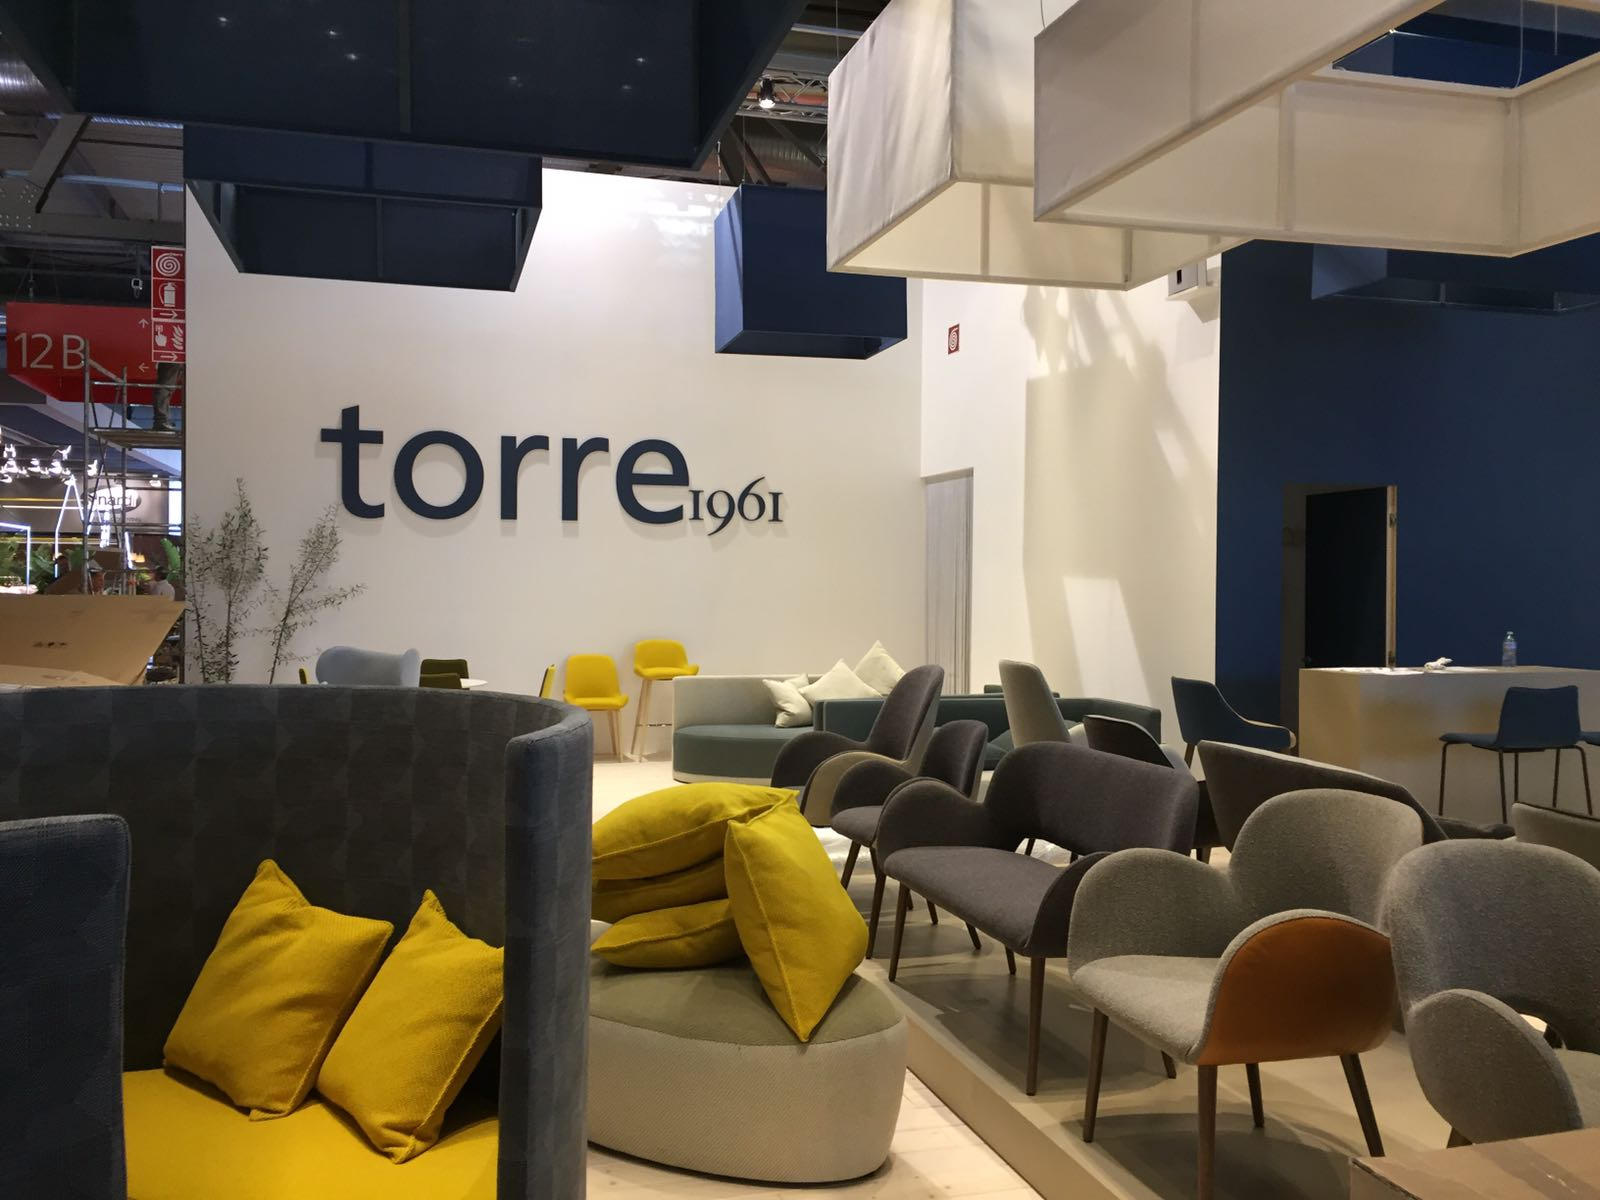 color trends Color Trends Spotted at iSaloni 2017 Color Trends Spotted at iSaloni 2017 1 1